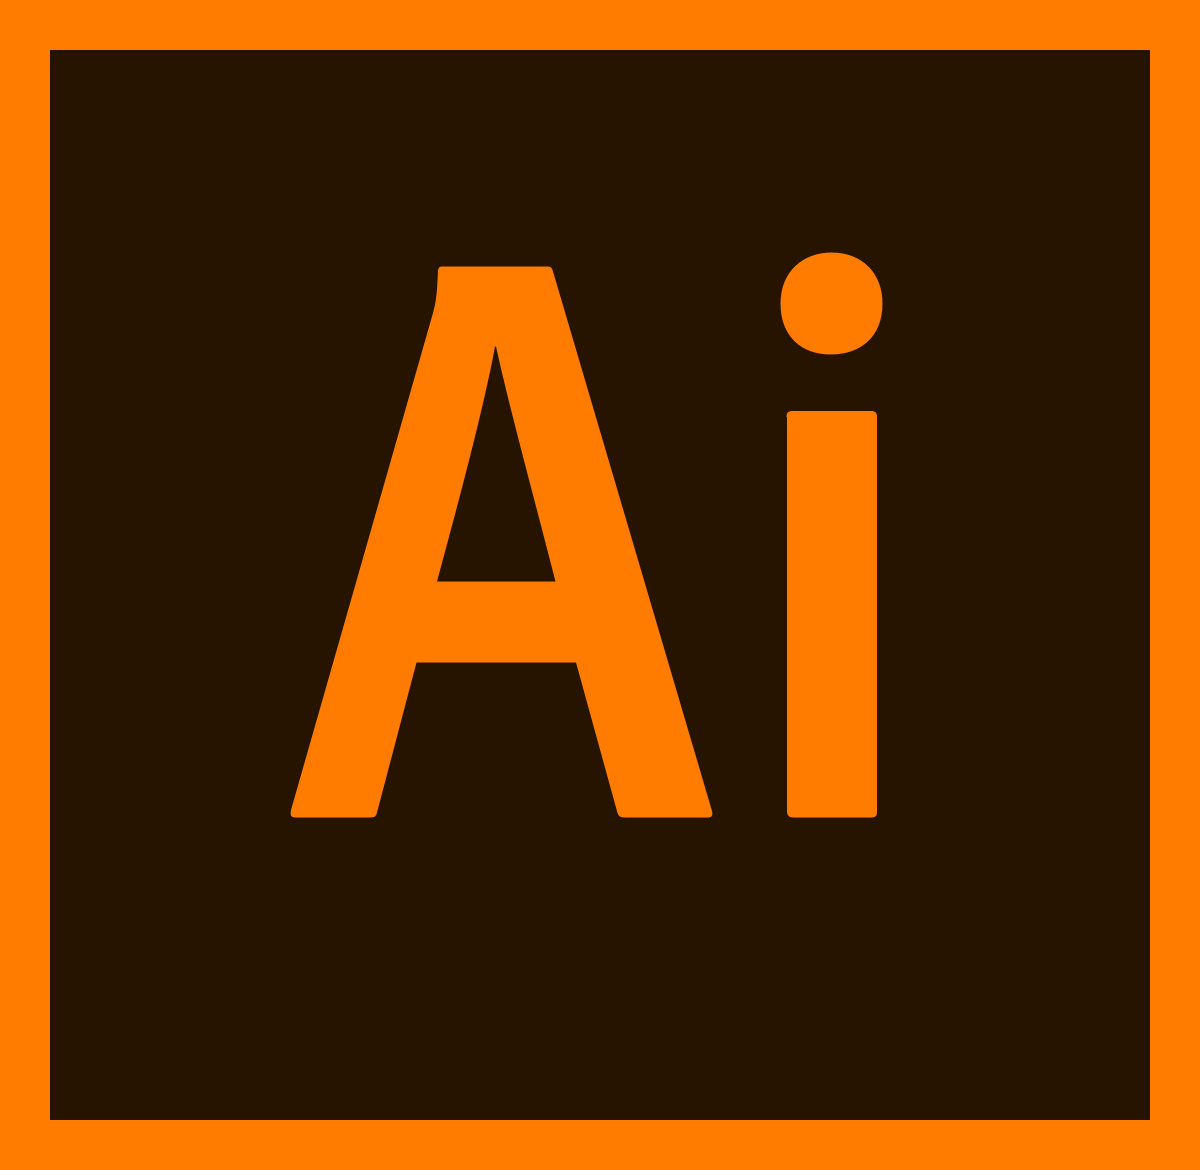 Adobe Illustrator Crack 2020 + Serial Number Free Download